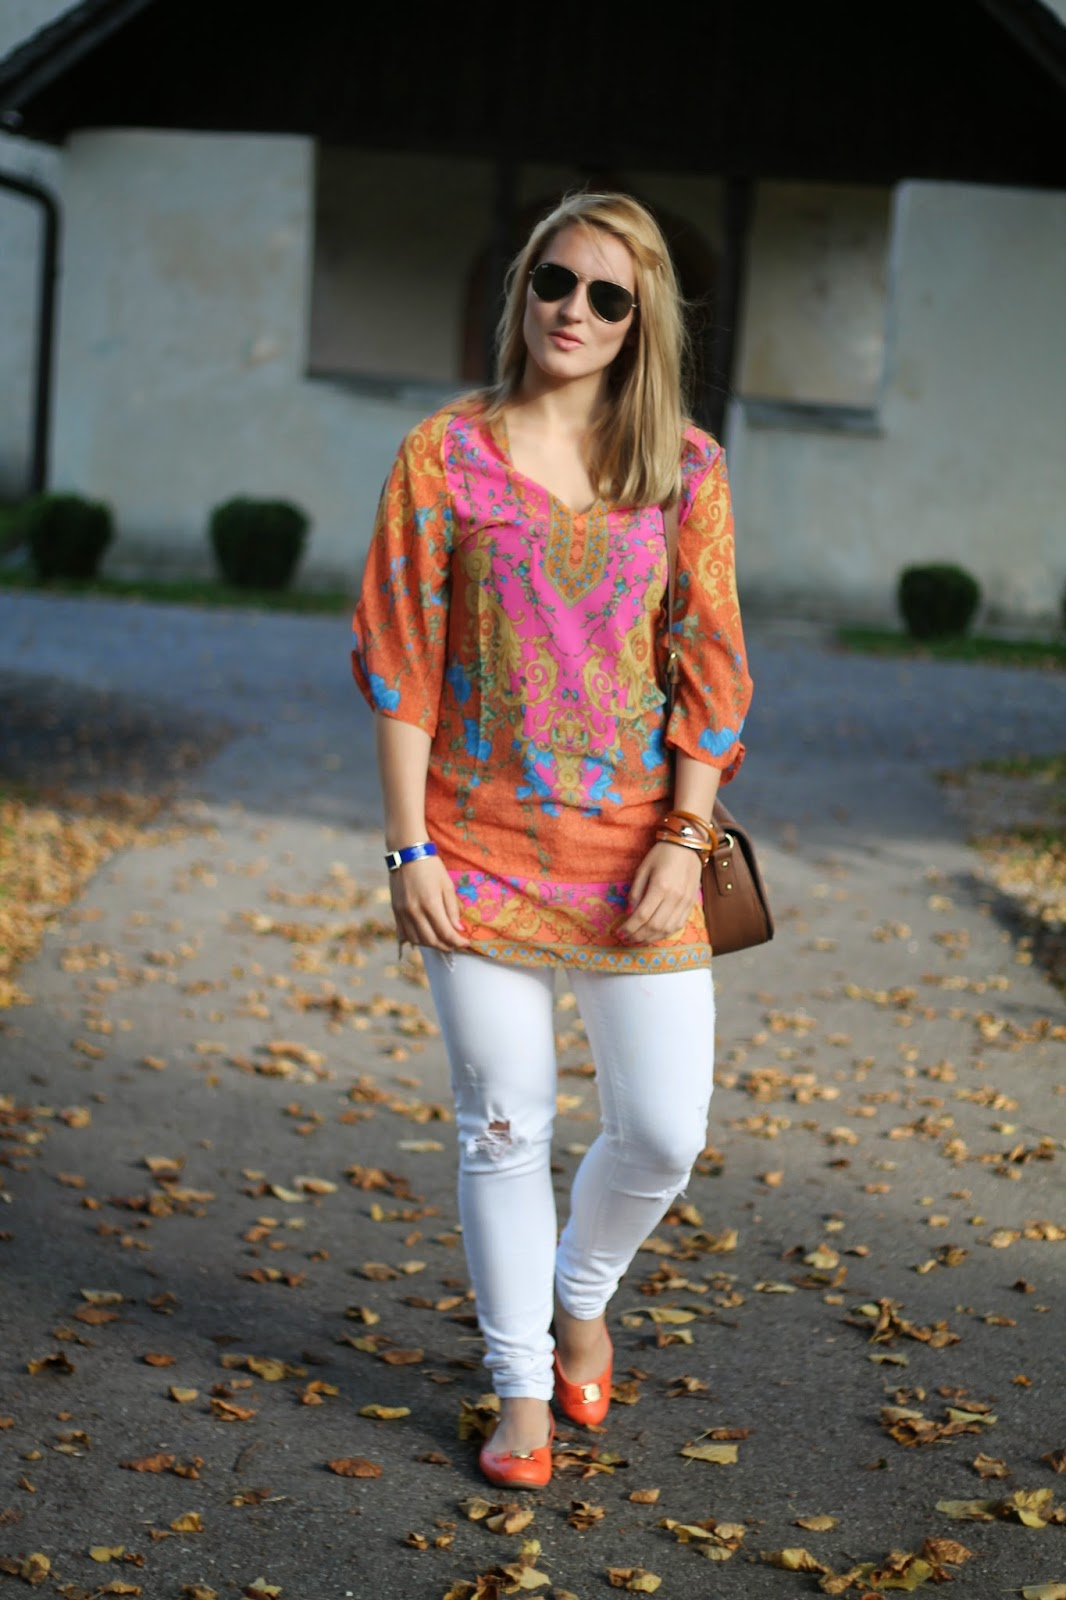 Fashionblogger Austria / Österreich / Deutsch / German / Kärnten / Carinthia / Klagenfurt / Köttmannsdorf / Spring Look / Classy / Edgy / Autumn / Autumn Style 2014 / Autumn Look / Fashionista Look / Indian Summer / White Jeans Mango / Orange Flats Tommy Hilfiger / Crossbody Bag Even and Odd / Tunika Blouse Pink Orange Blue Oasap / Ray Ban Aviator Sunglasses /